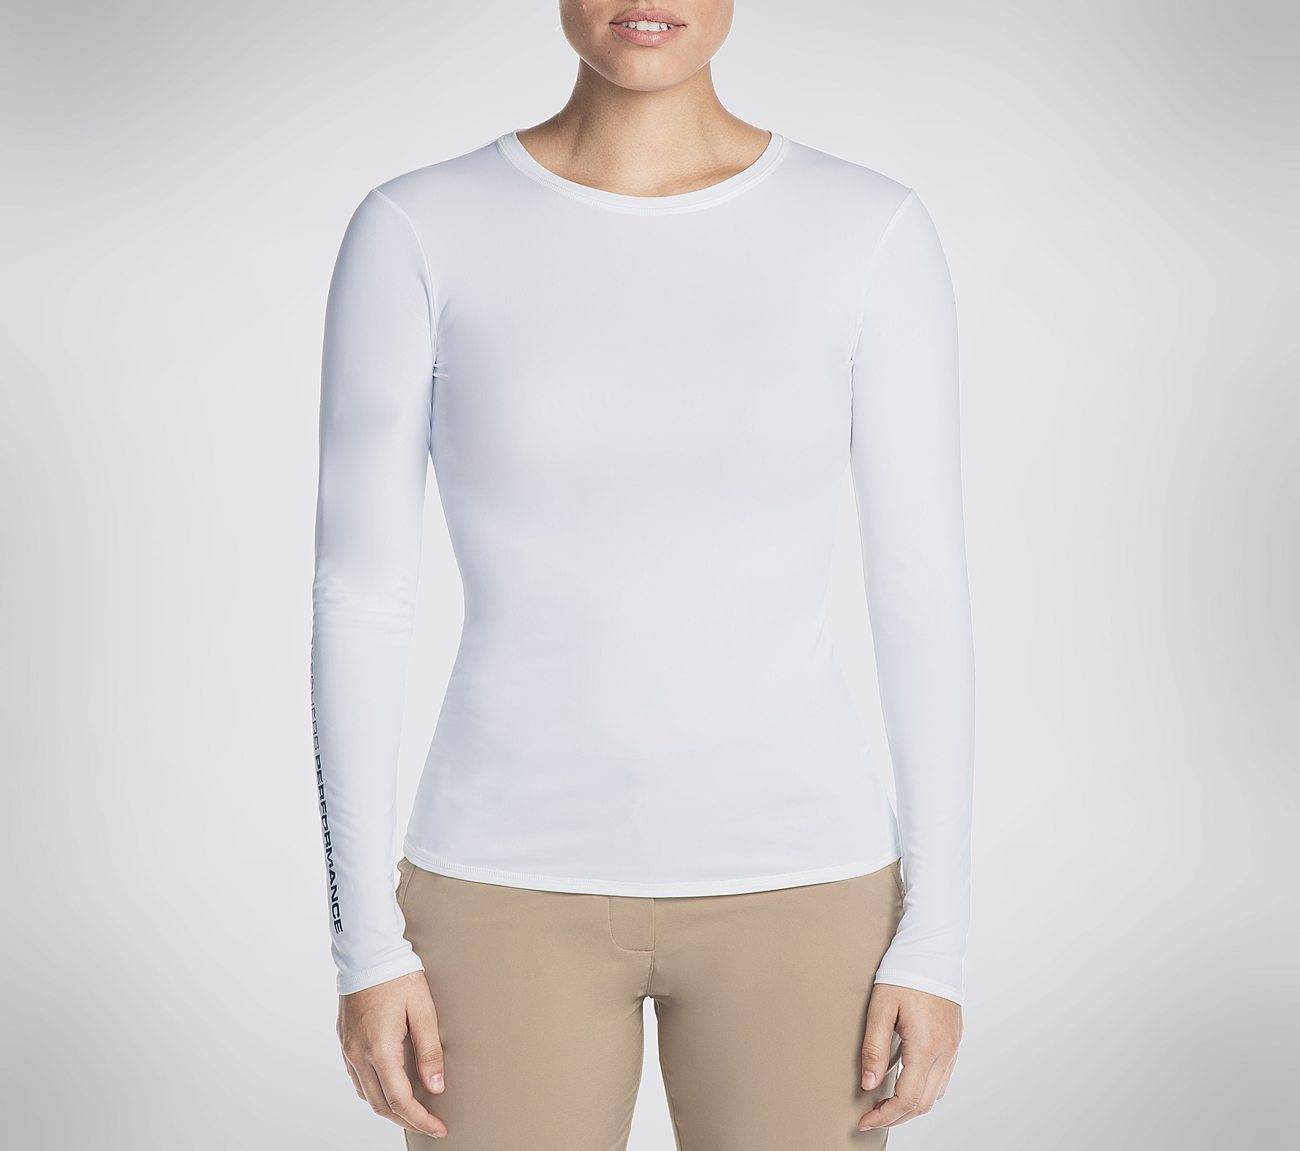 Skechers Women's UPF Longsleeve Baselayer Shirt